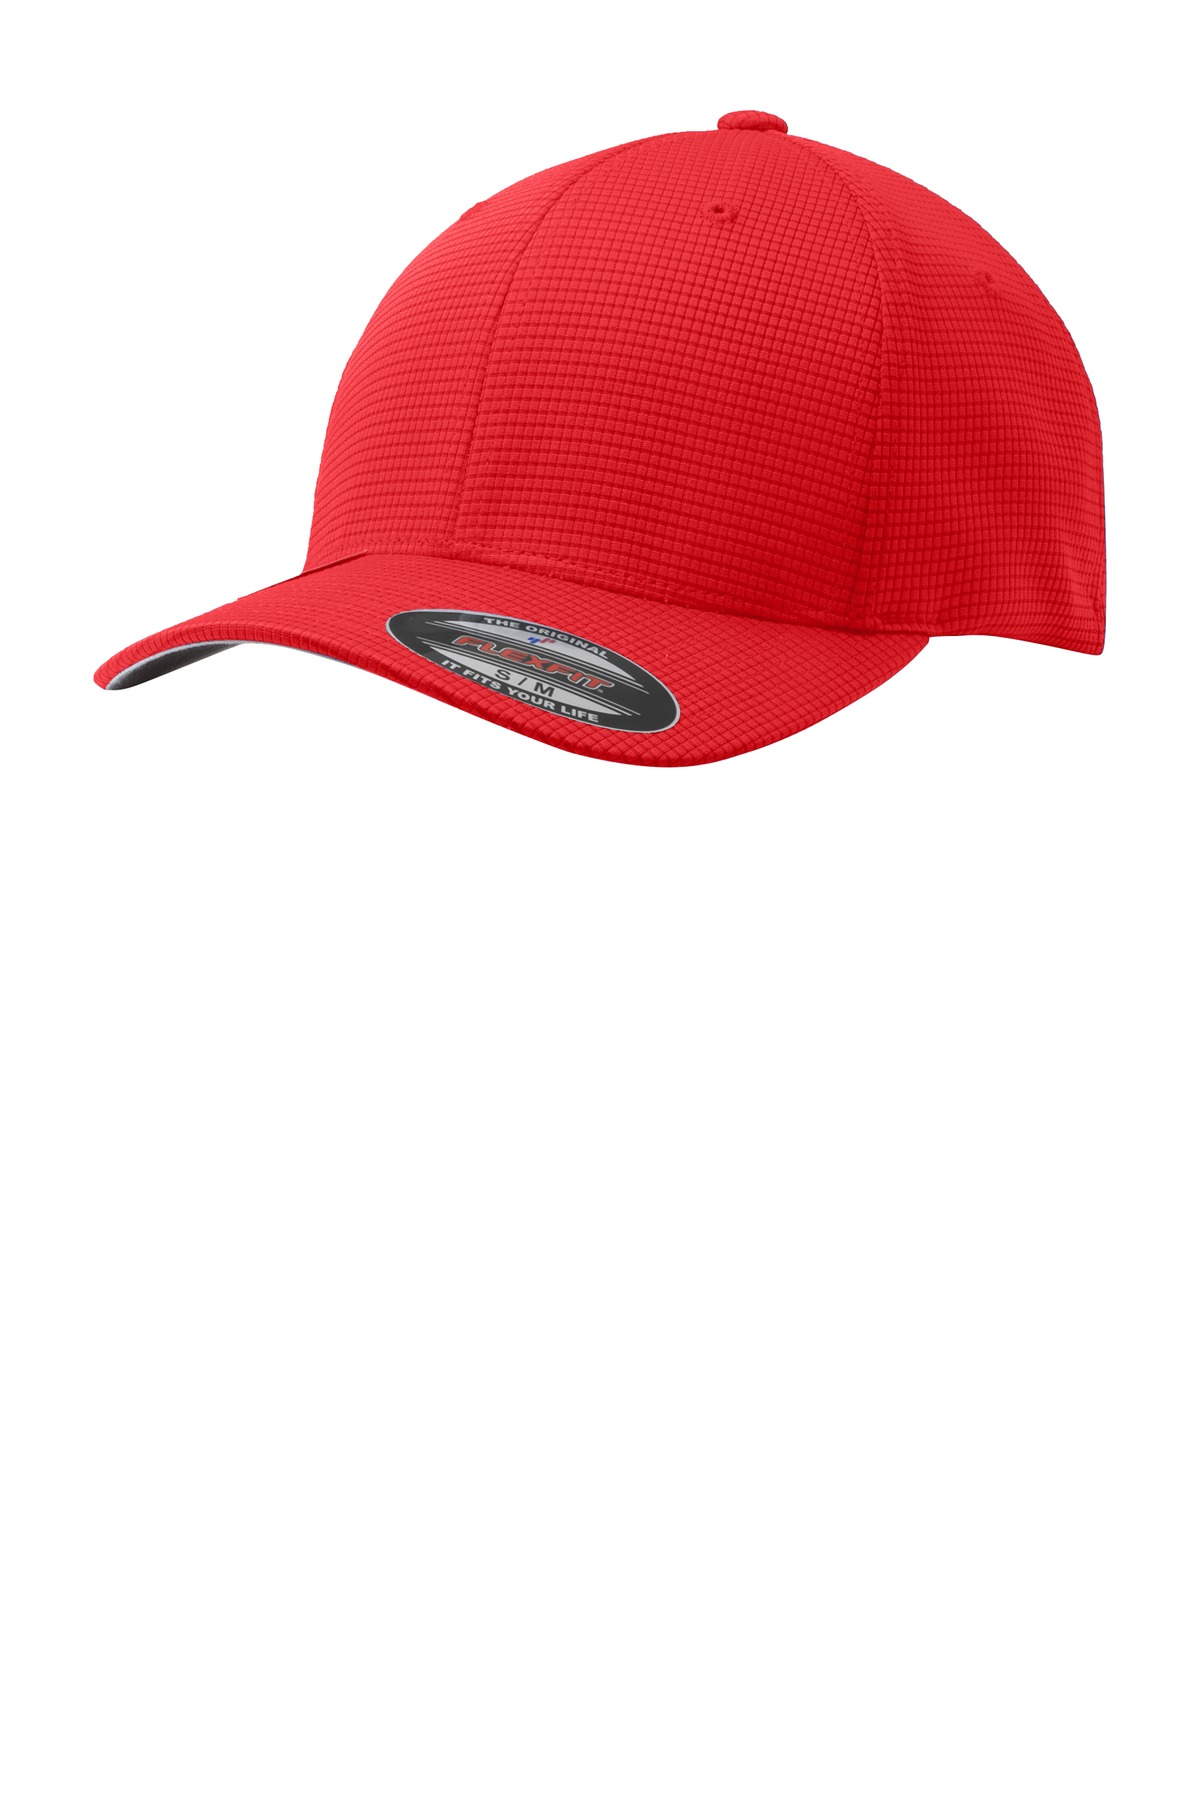 Sport-Tek ®  Flexfit ®  Grid Texture Cap. STC33 - True Red